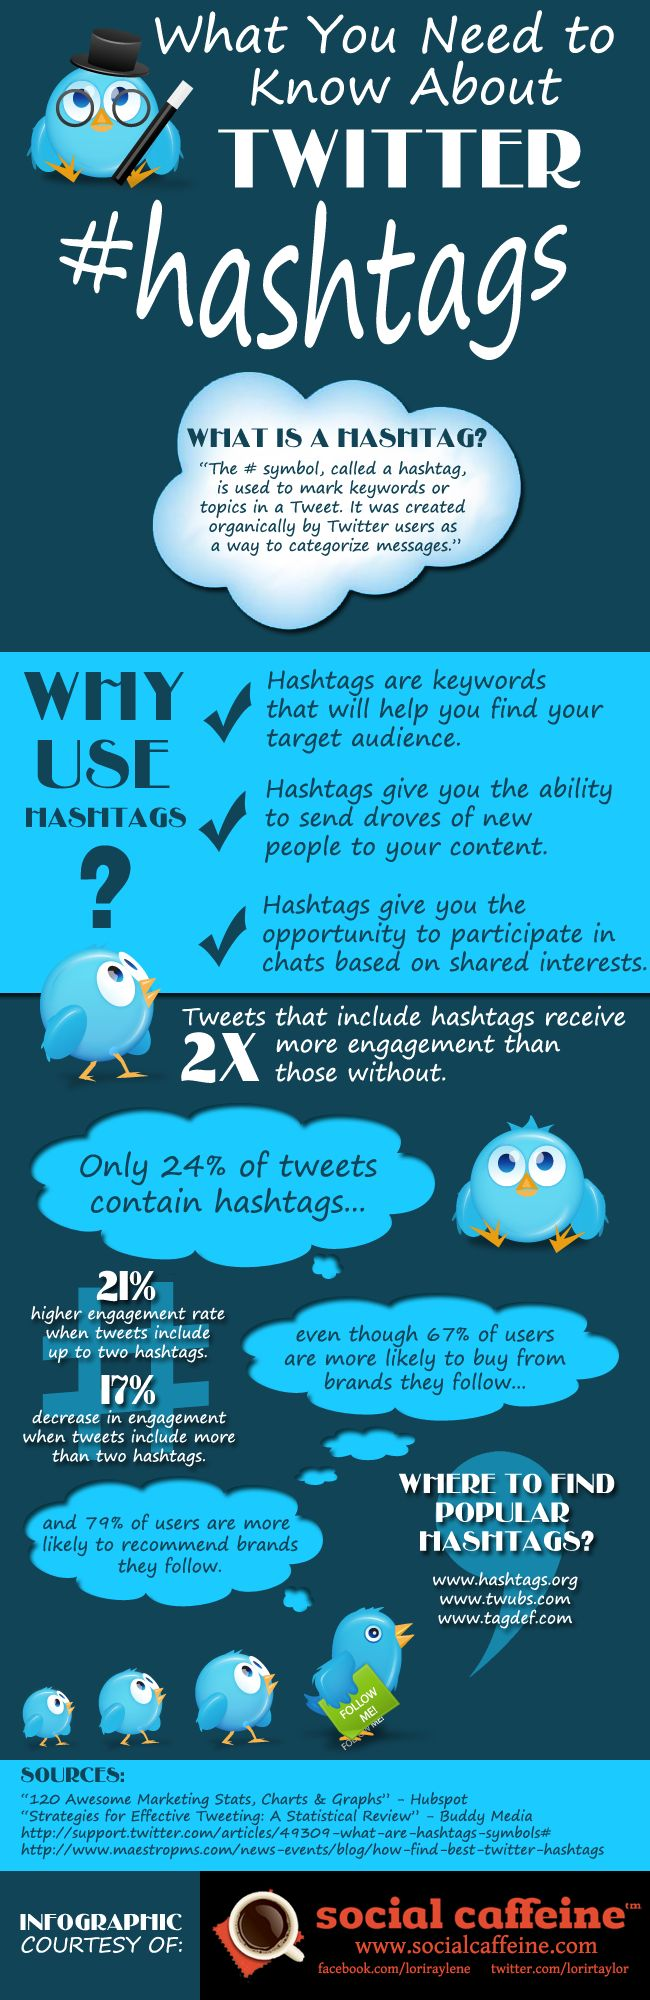 What You Need to Know About Twitter Hashtags [INFOGRAPHIC] #twitter #socialmedia #marketing